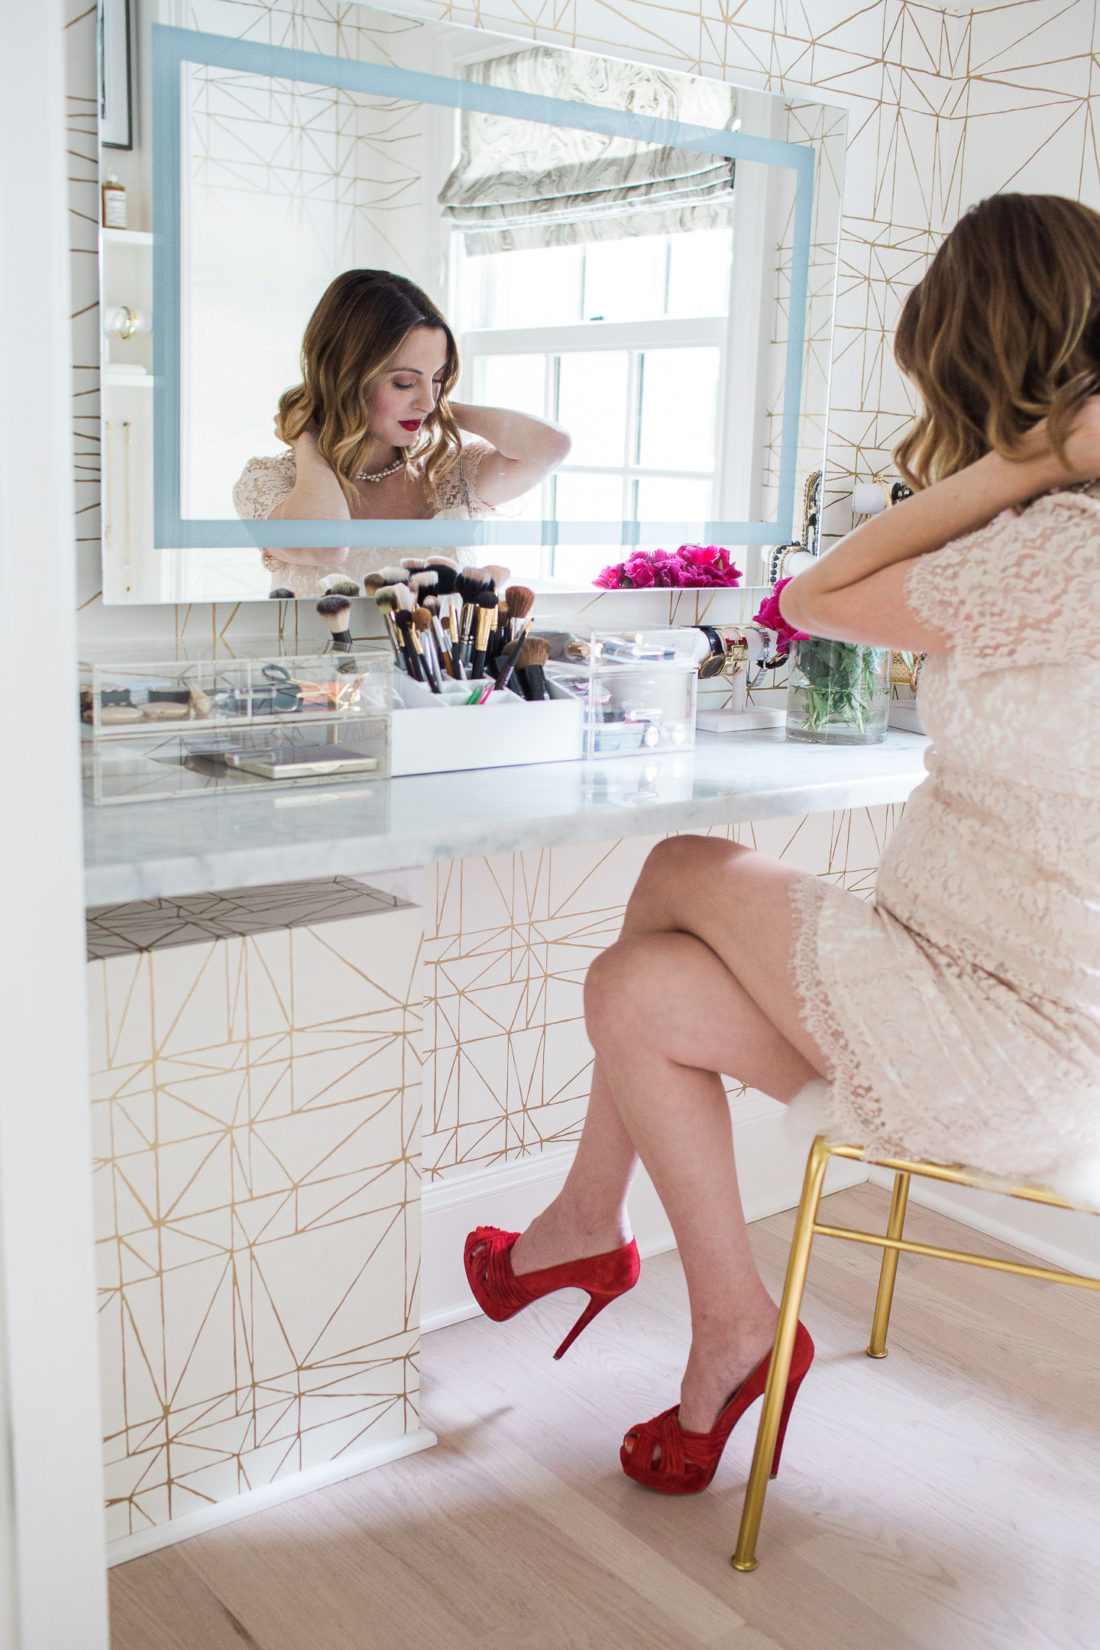 Eva Amurri Martino of lifestyle and motherhood blog Happily Eva After wearing a nude lace maternity dress and sitting at the table in her Glam Room applying makeup and jewelry